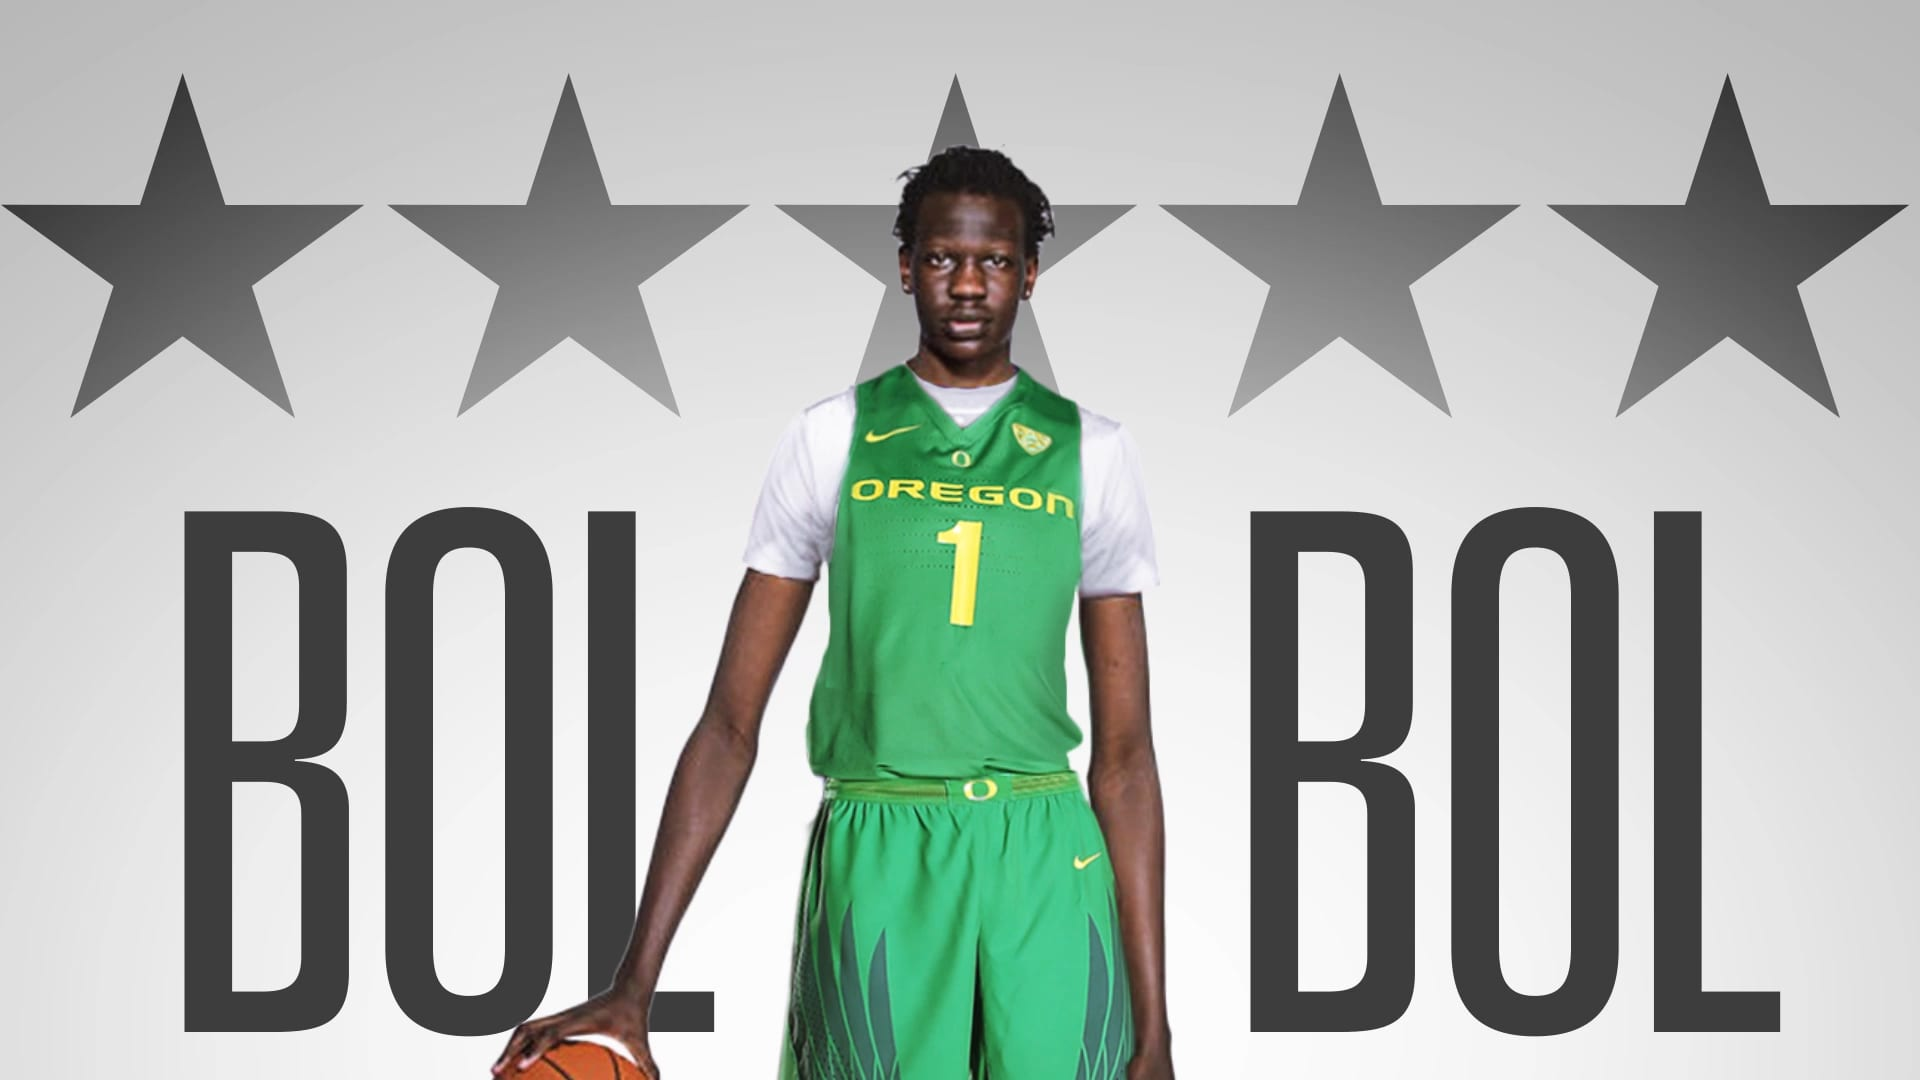 7ad8624350e6 Will Bol Bol surpass his father in the NBA  — We Are Basket